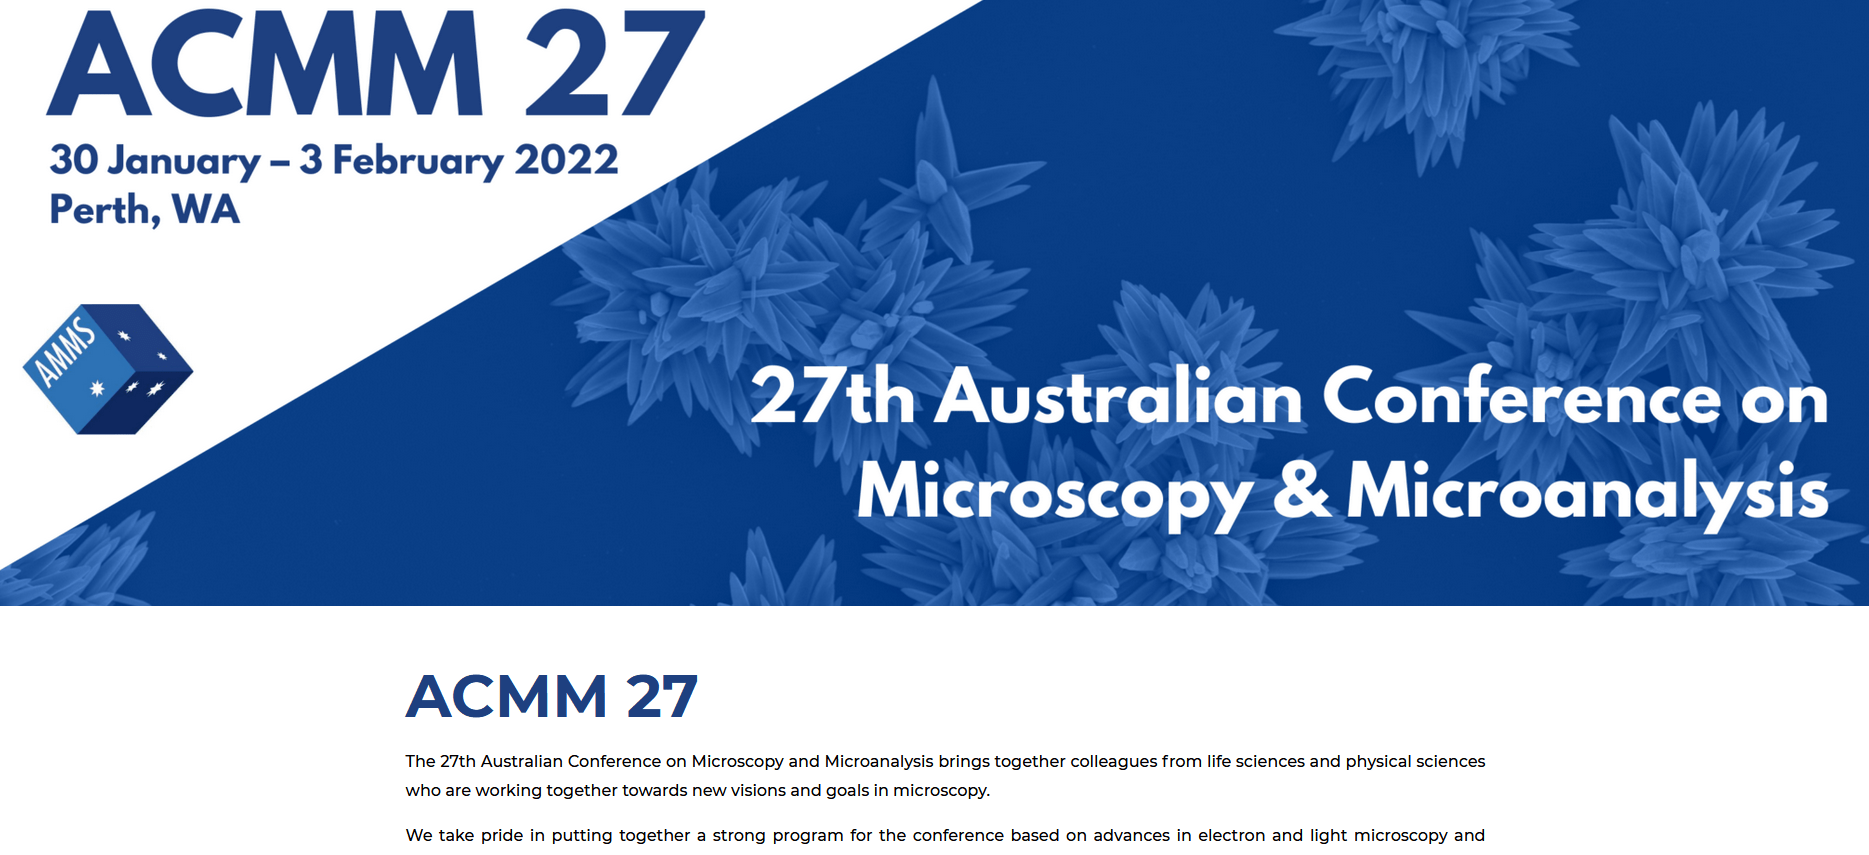 ACMM 27 Conference - Designed by Watermark Events Australia